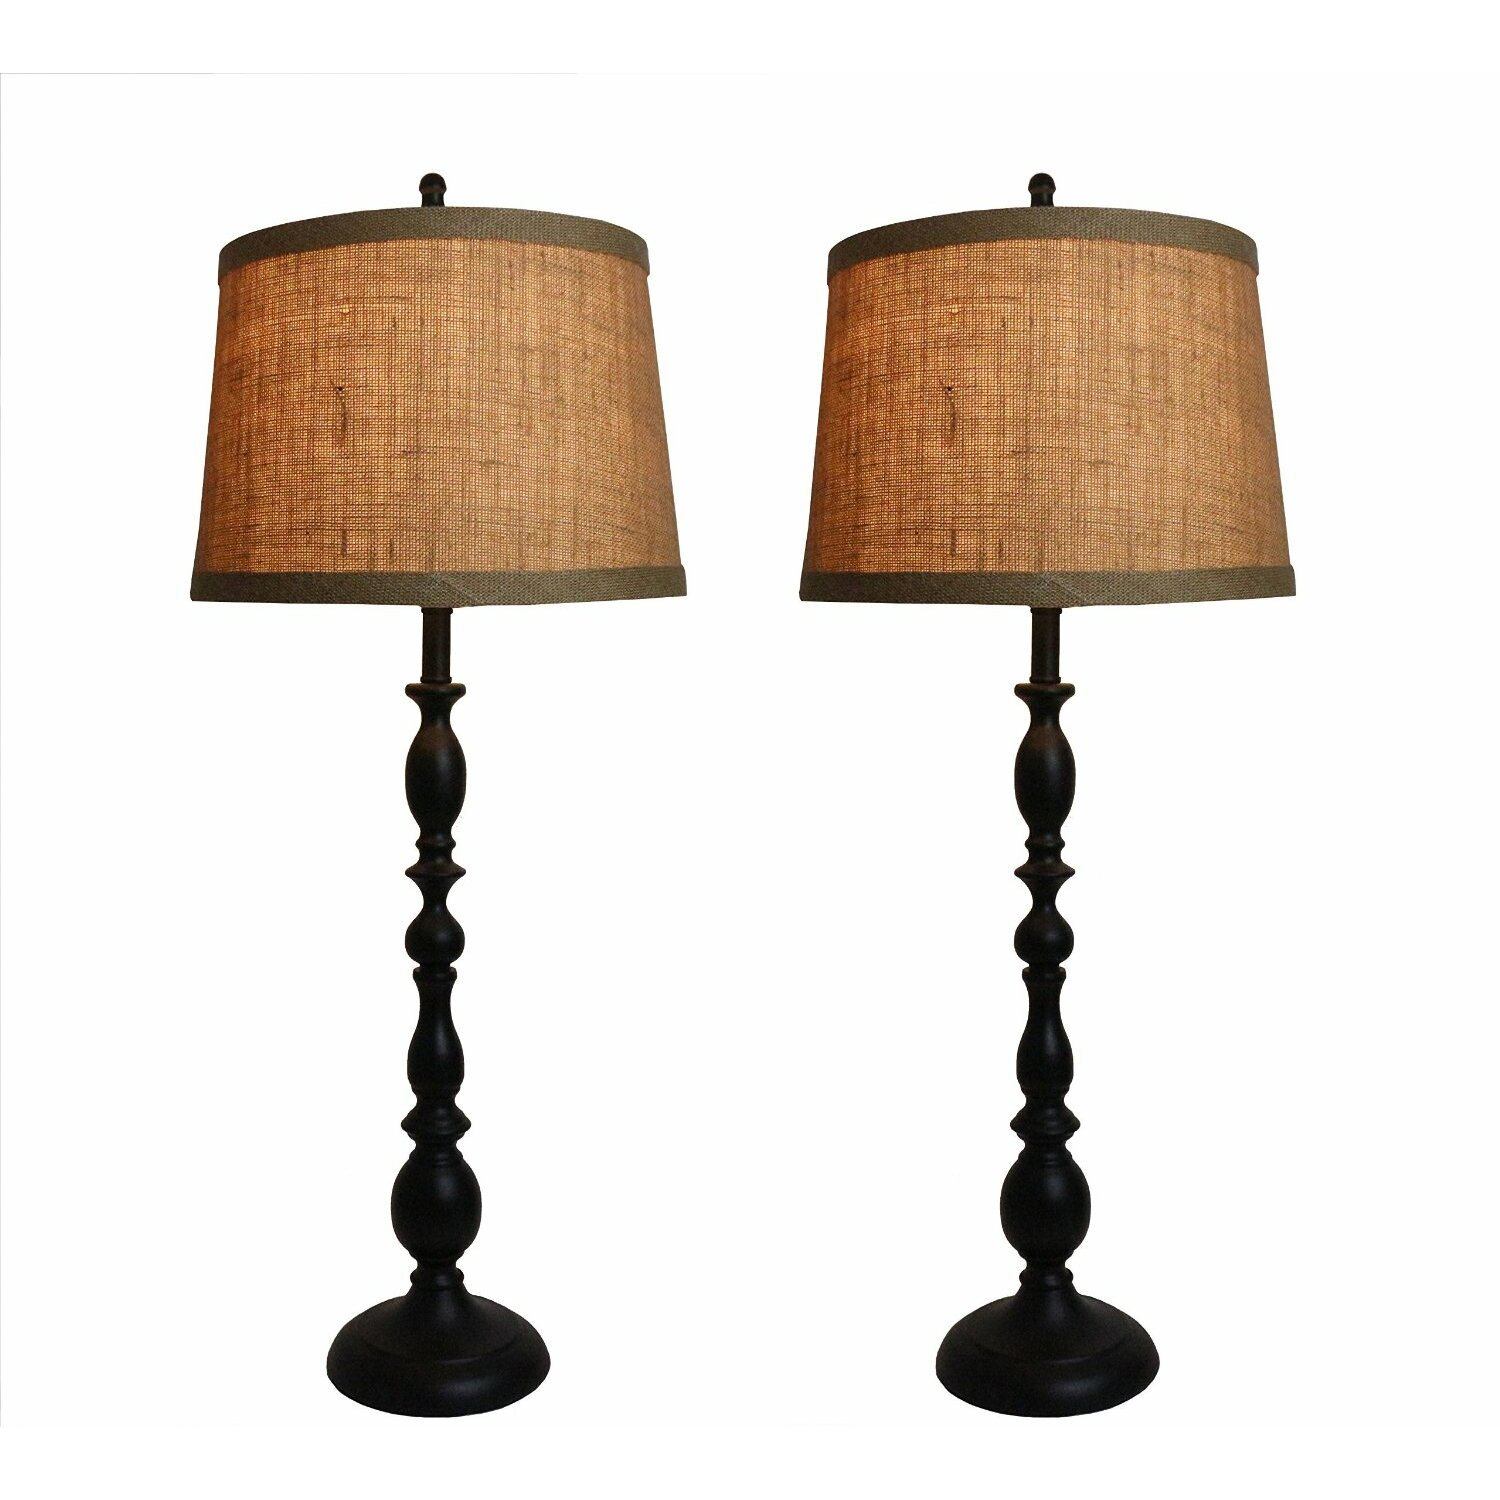 urbanest parker 31 5 table lamps set of 2 reviews. Black Bedroom Furniture Sets. Home Design Ideas